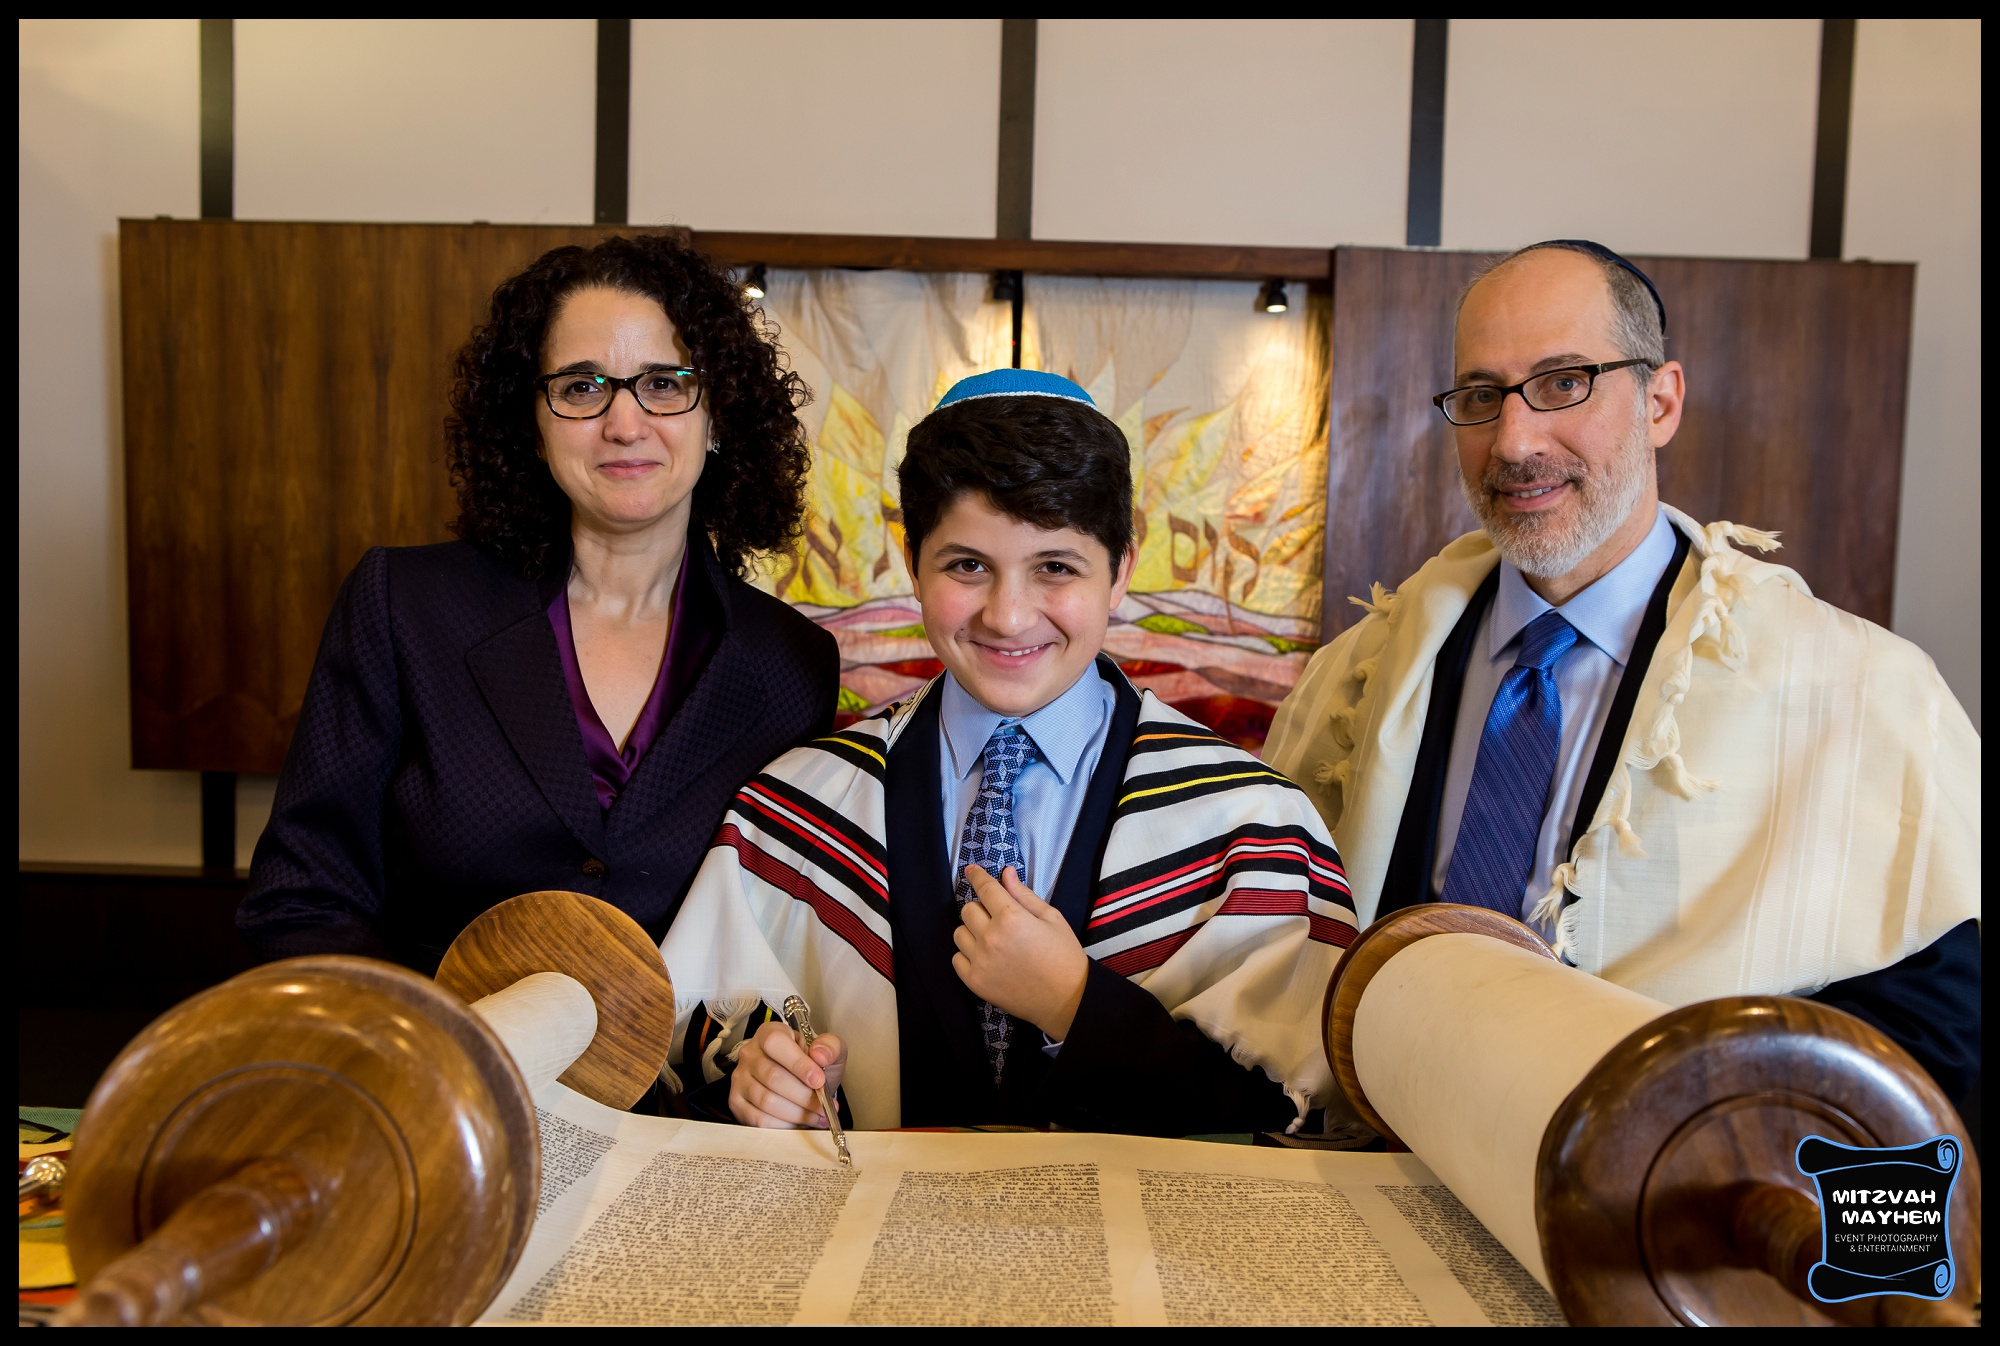 congregation-beth-el-south-orange-bar-mitzvah-4876.jpg